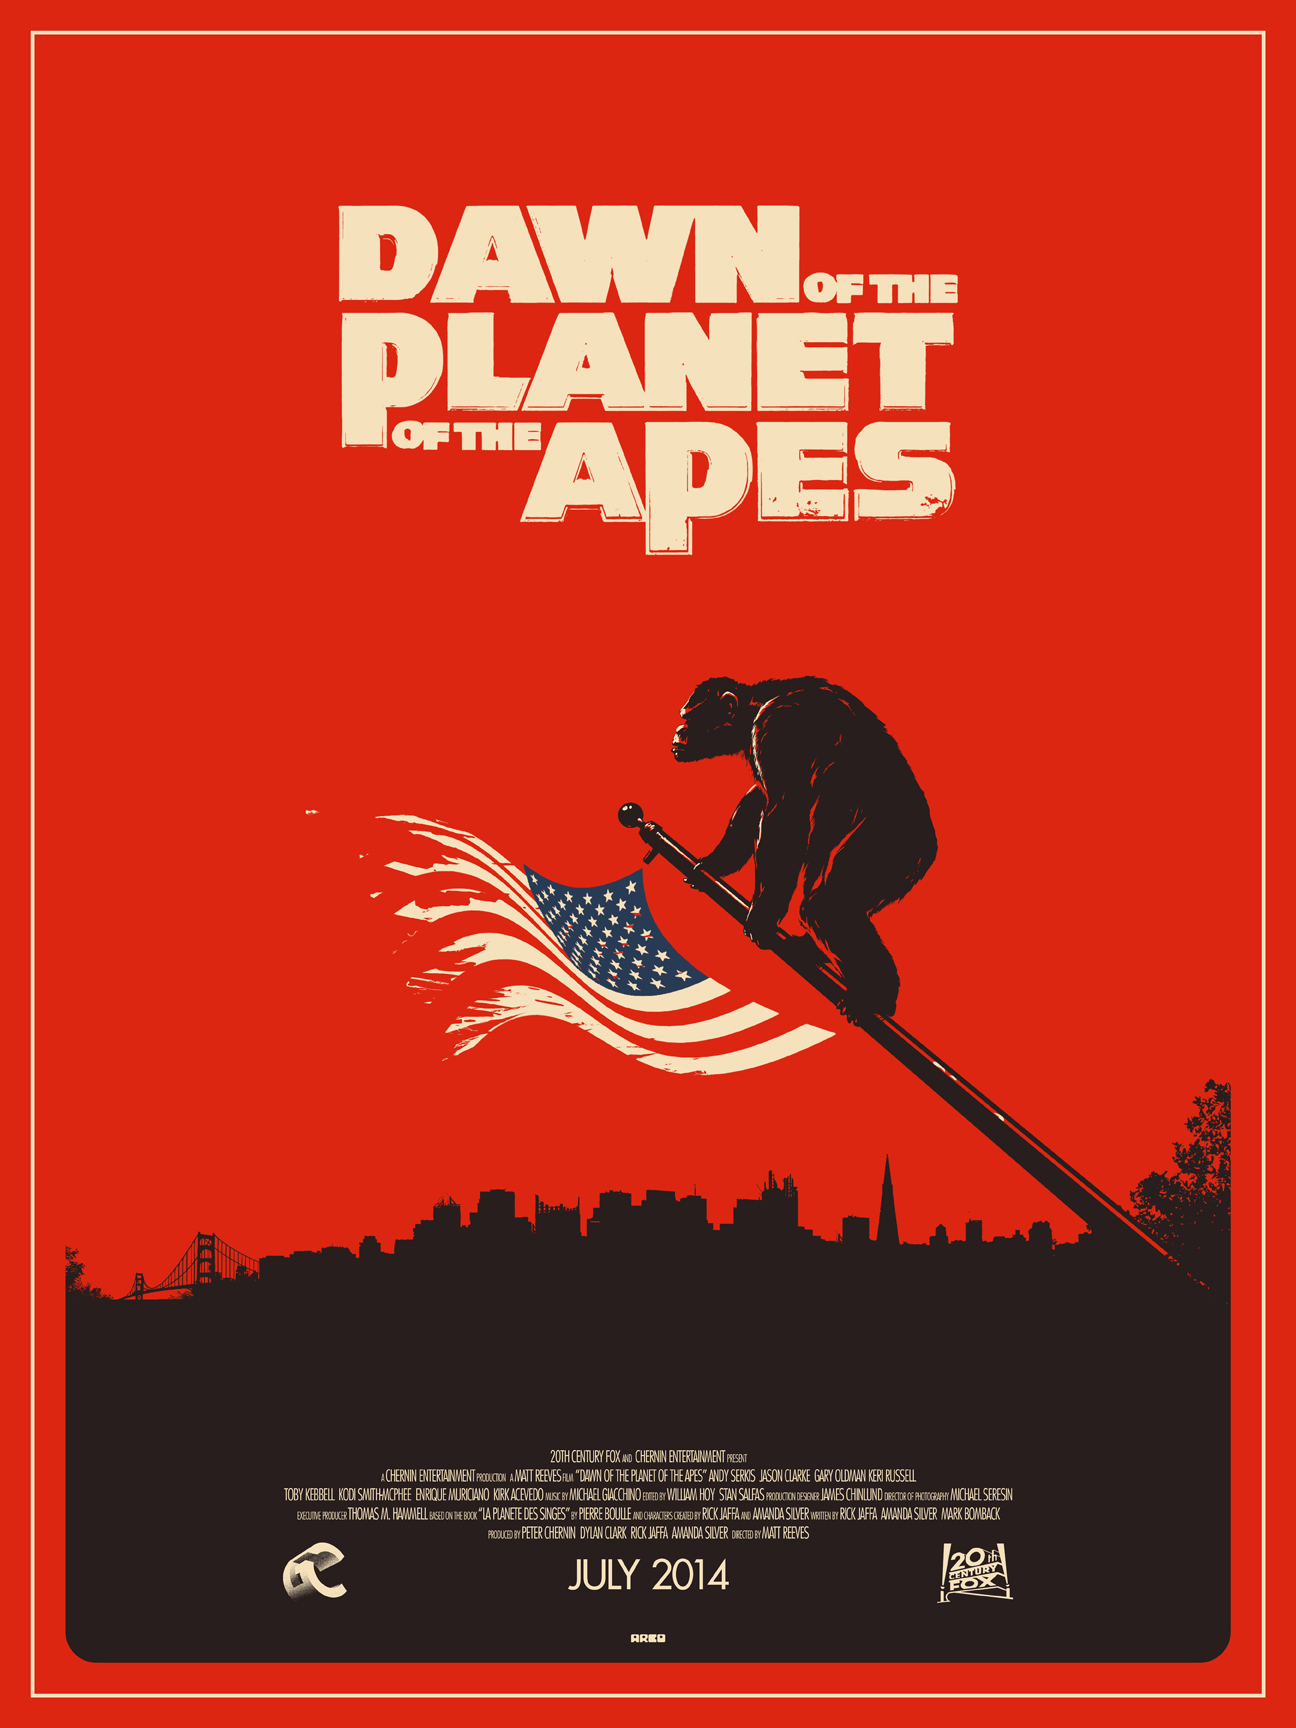 Dawn of the planets of the apes by Matt Ferguson